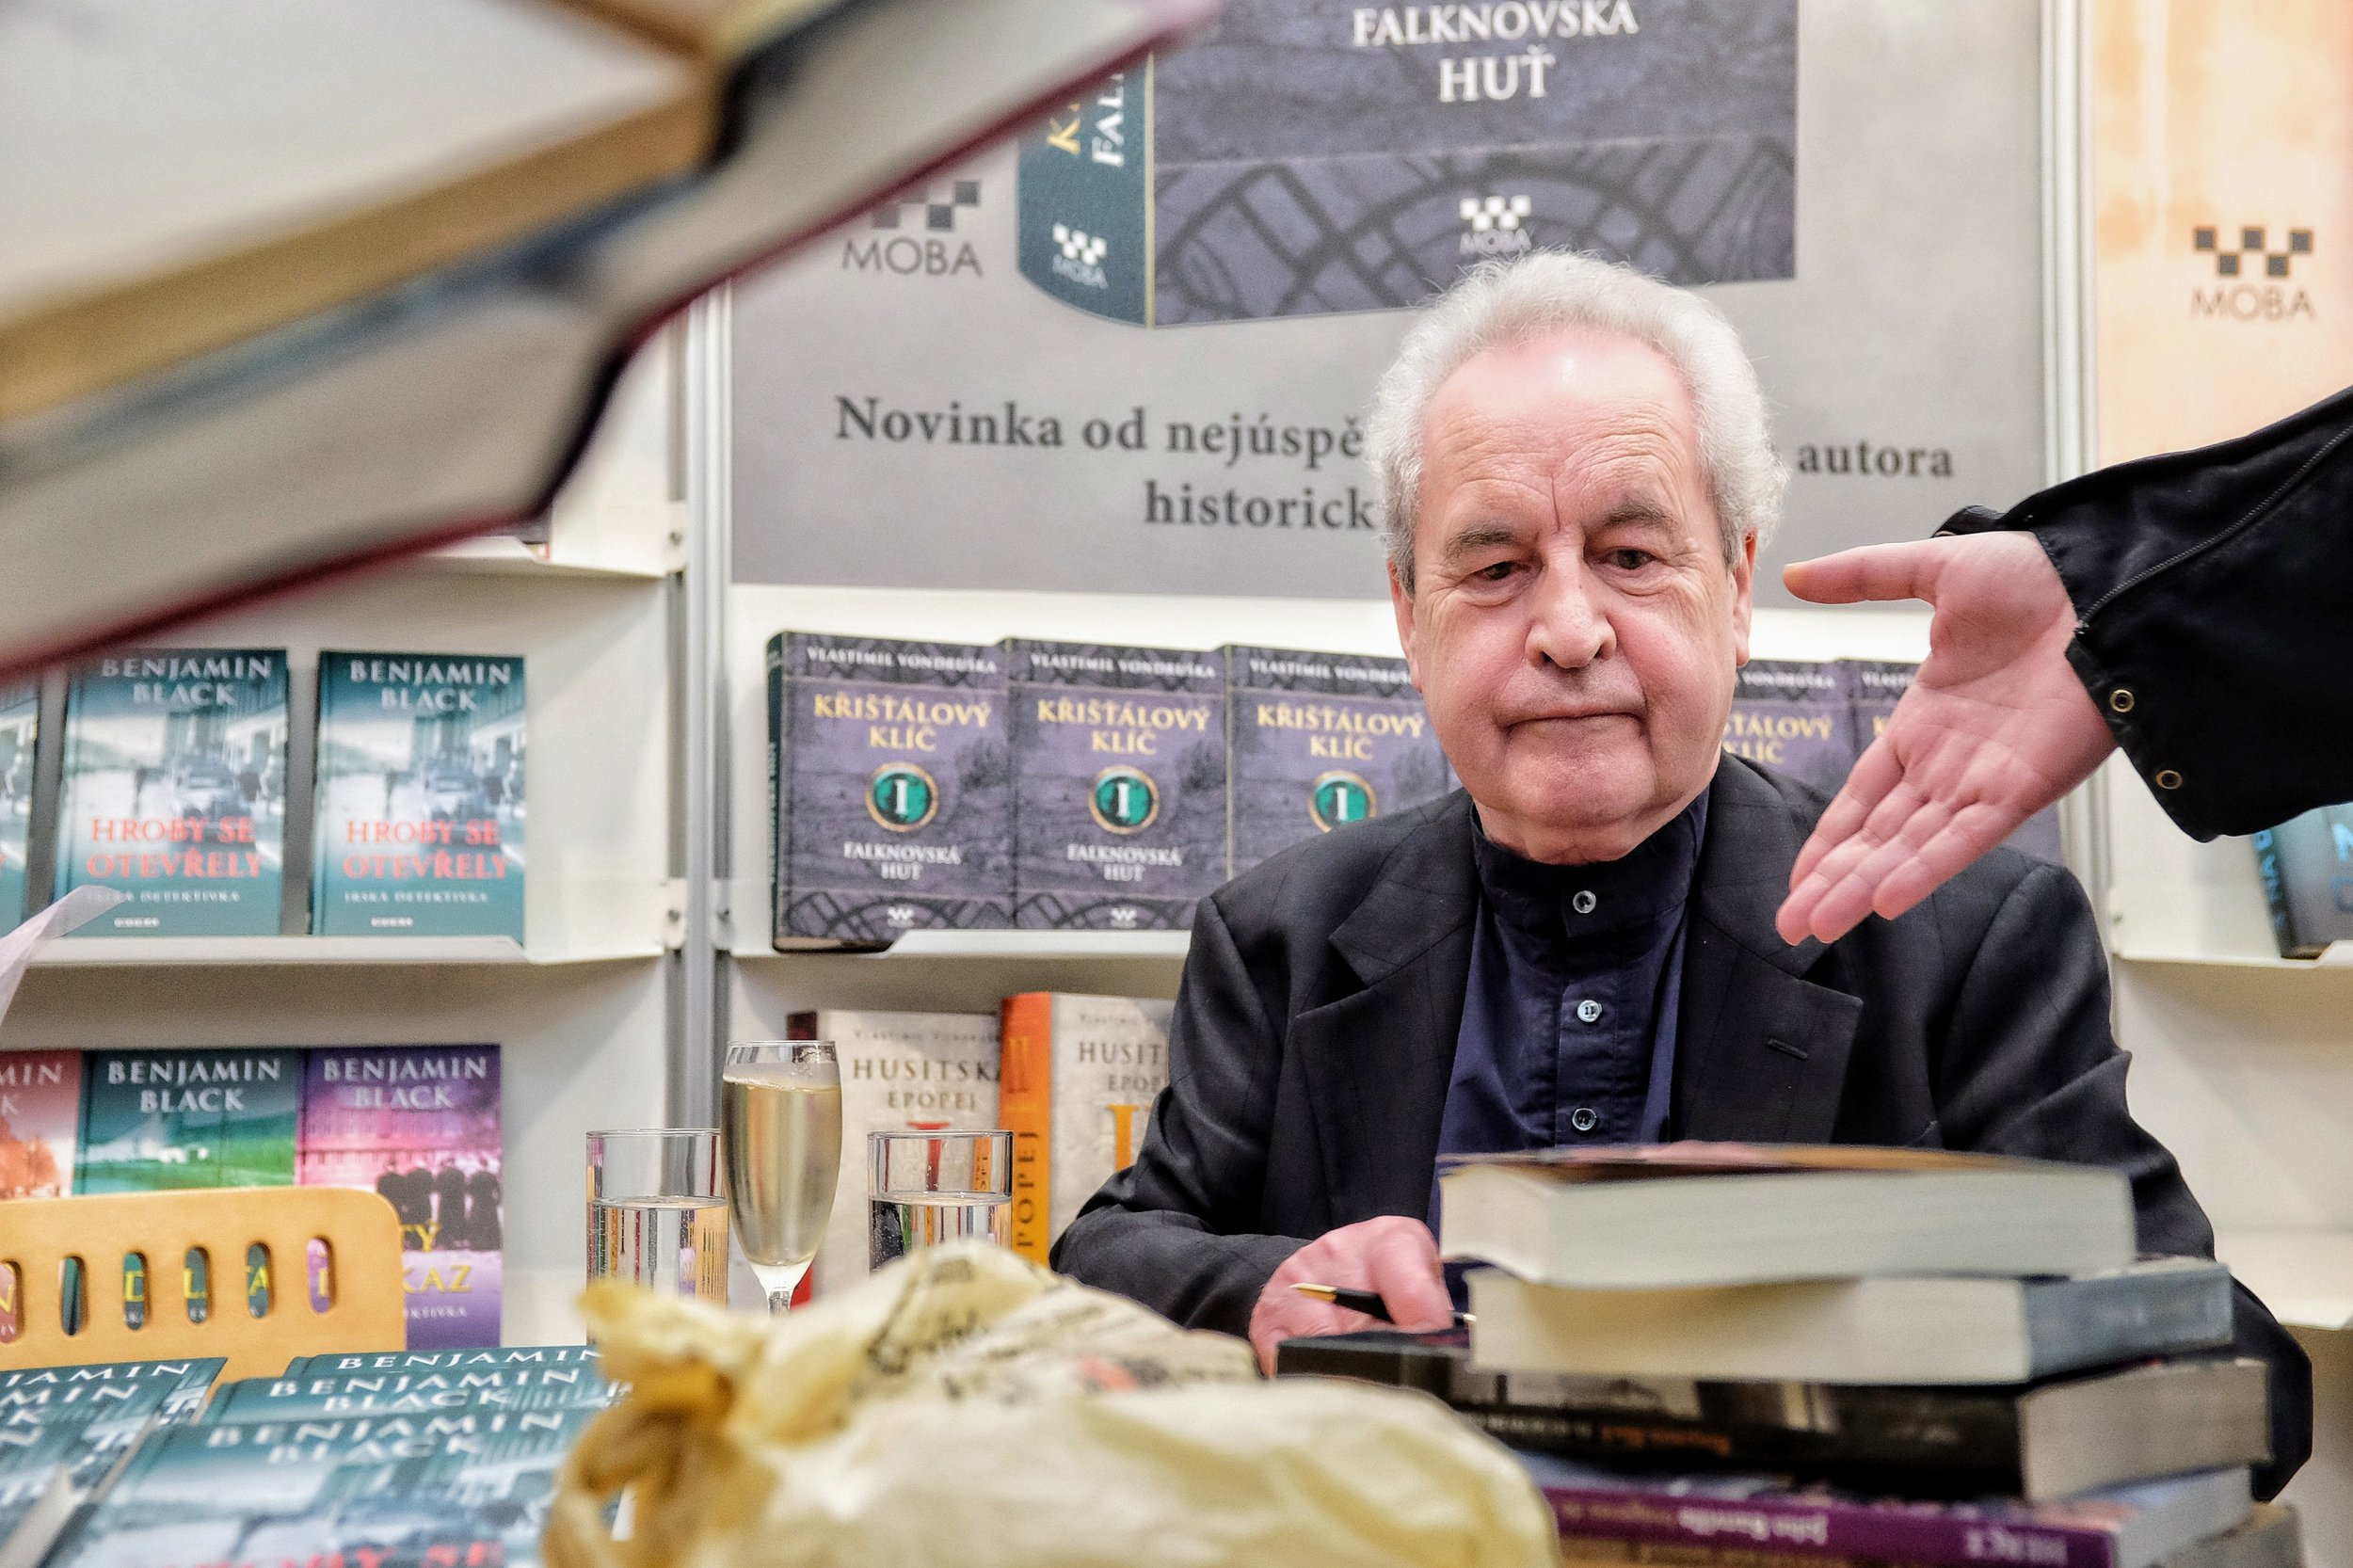 Irish author and Booker Award winner John Bunville is confronted with public expectations during a book signing event at Svět knihy 2019